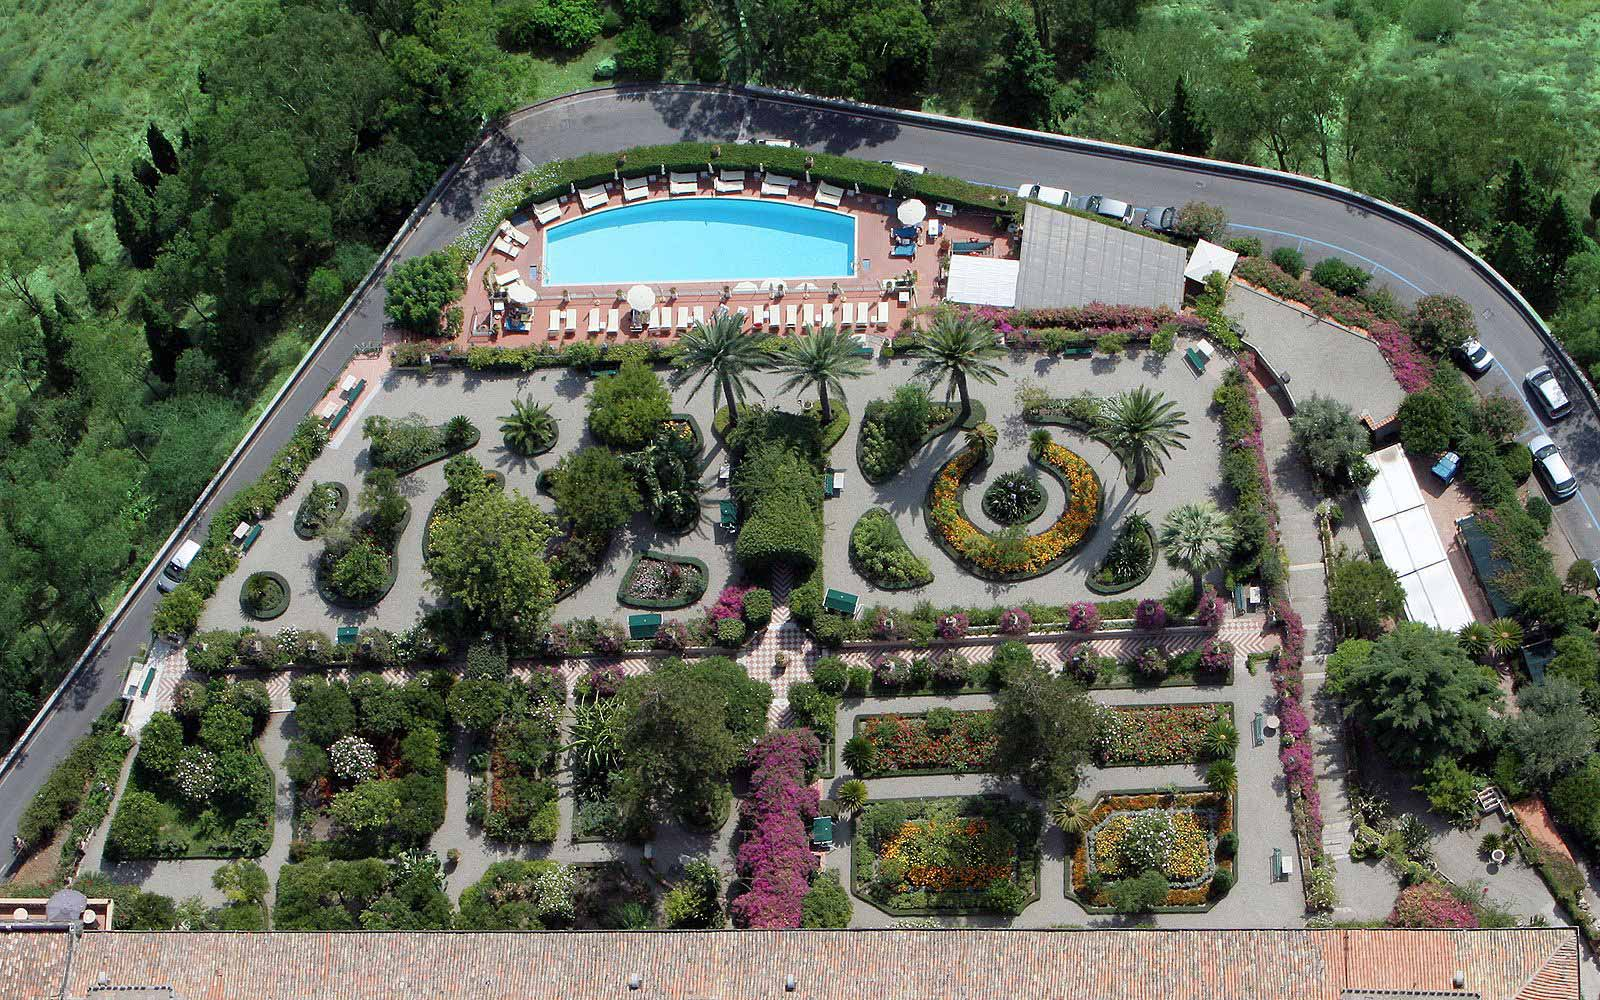 Medierranean gardens at the San Domenico Palace Hotel